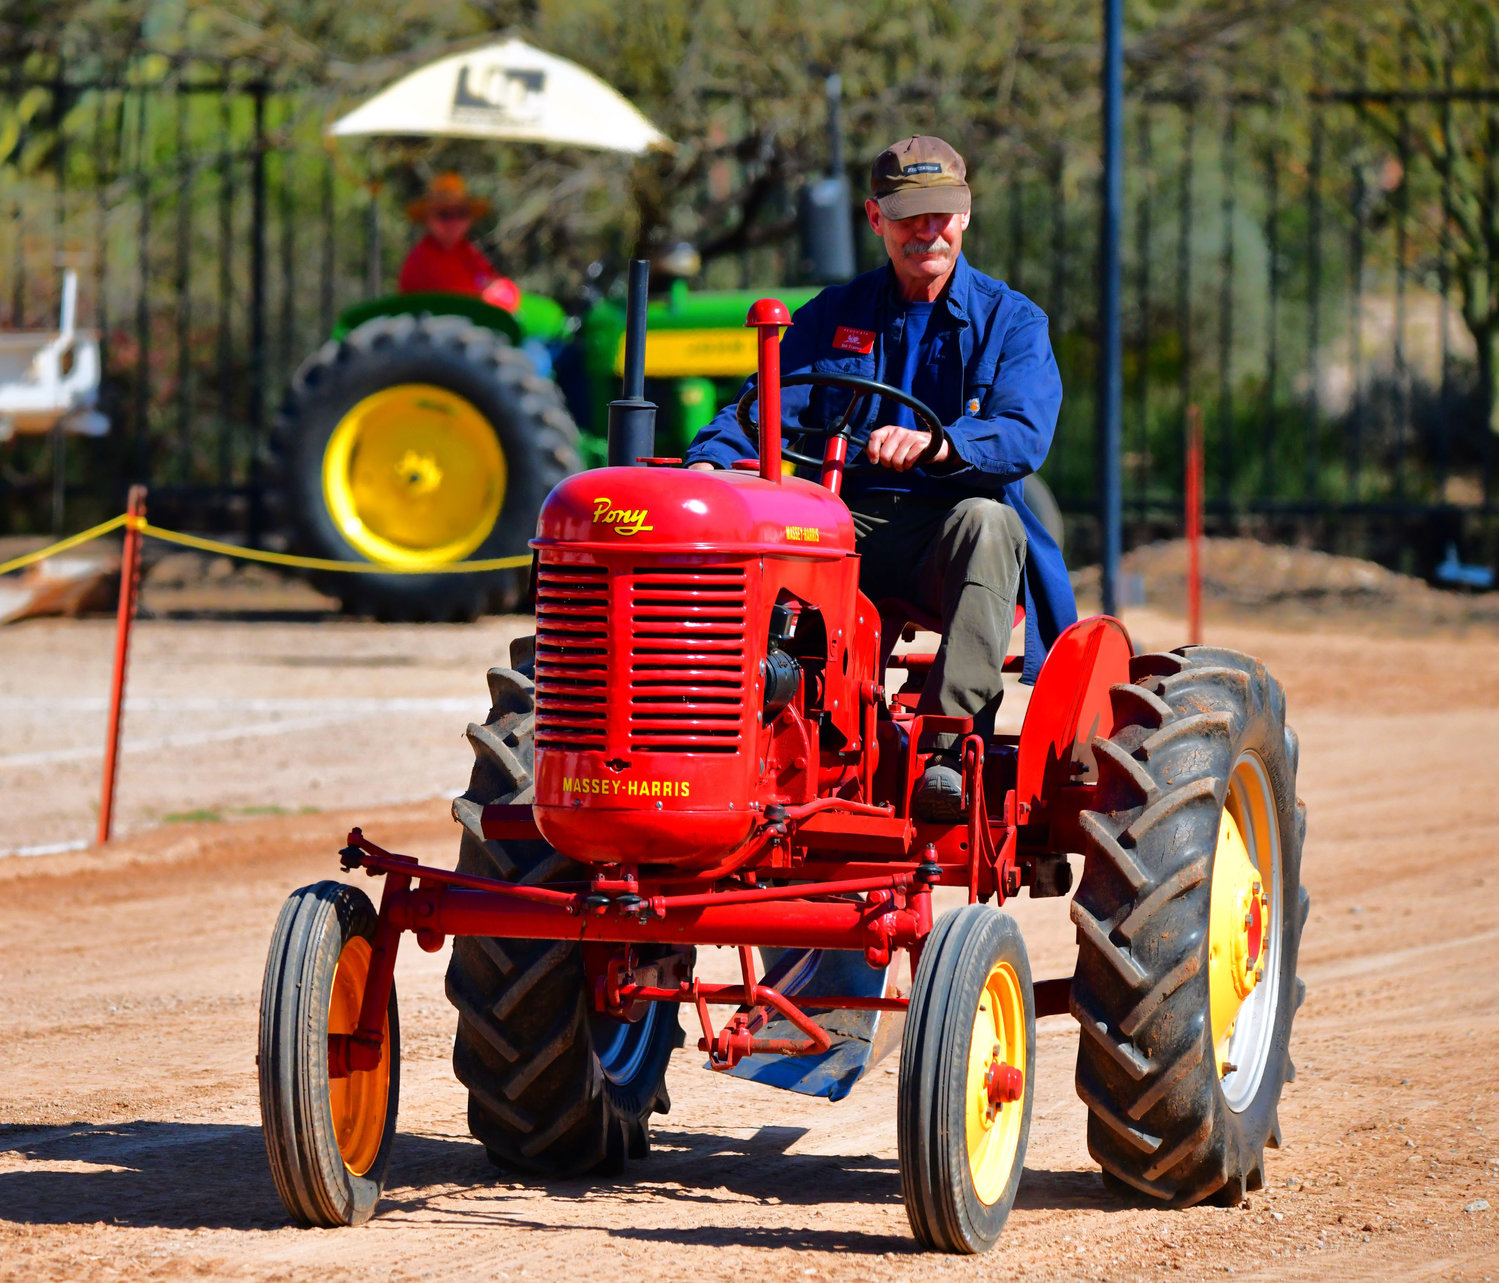 The Winter Antique Tractor & Engine Show will present its 31st show in Glendale.